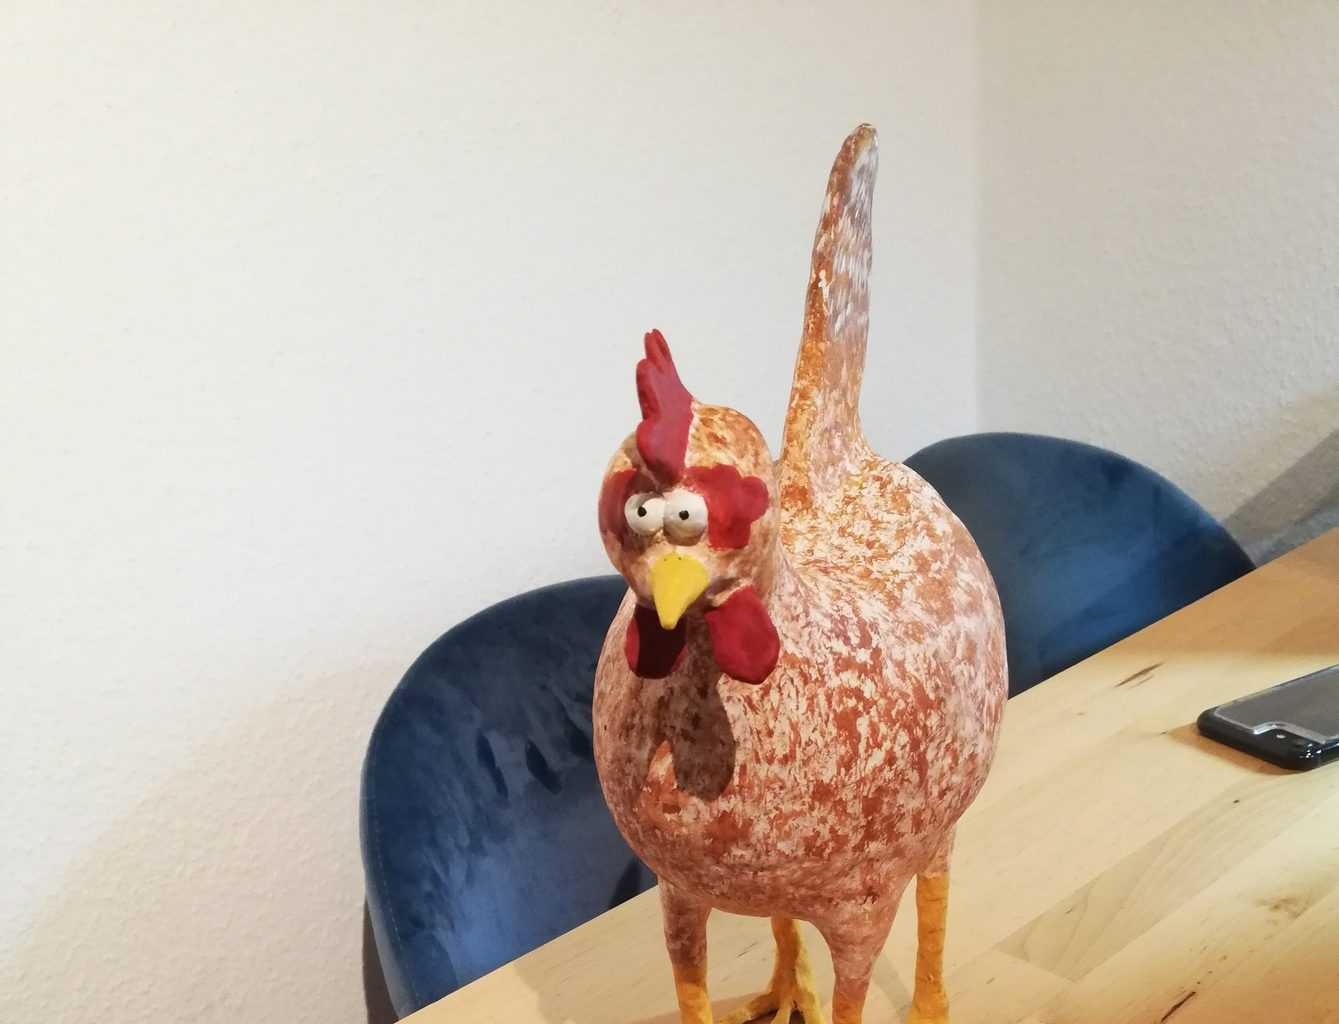 Crazy Four-Legged Chicken made with paper mache